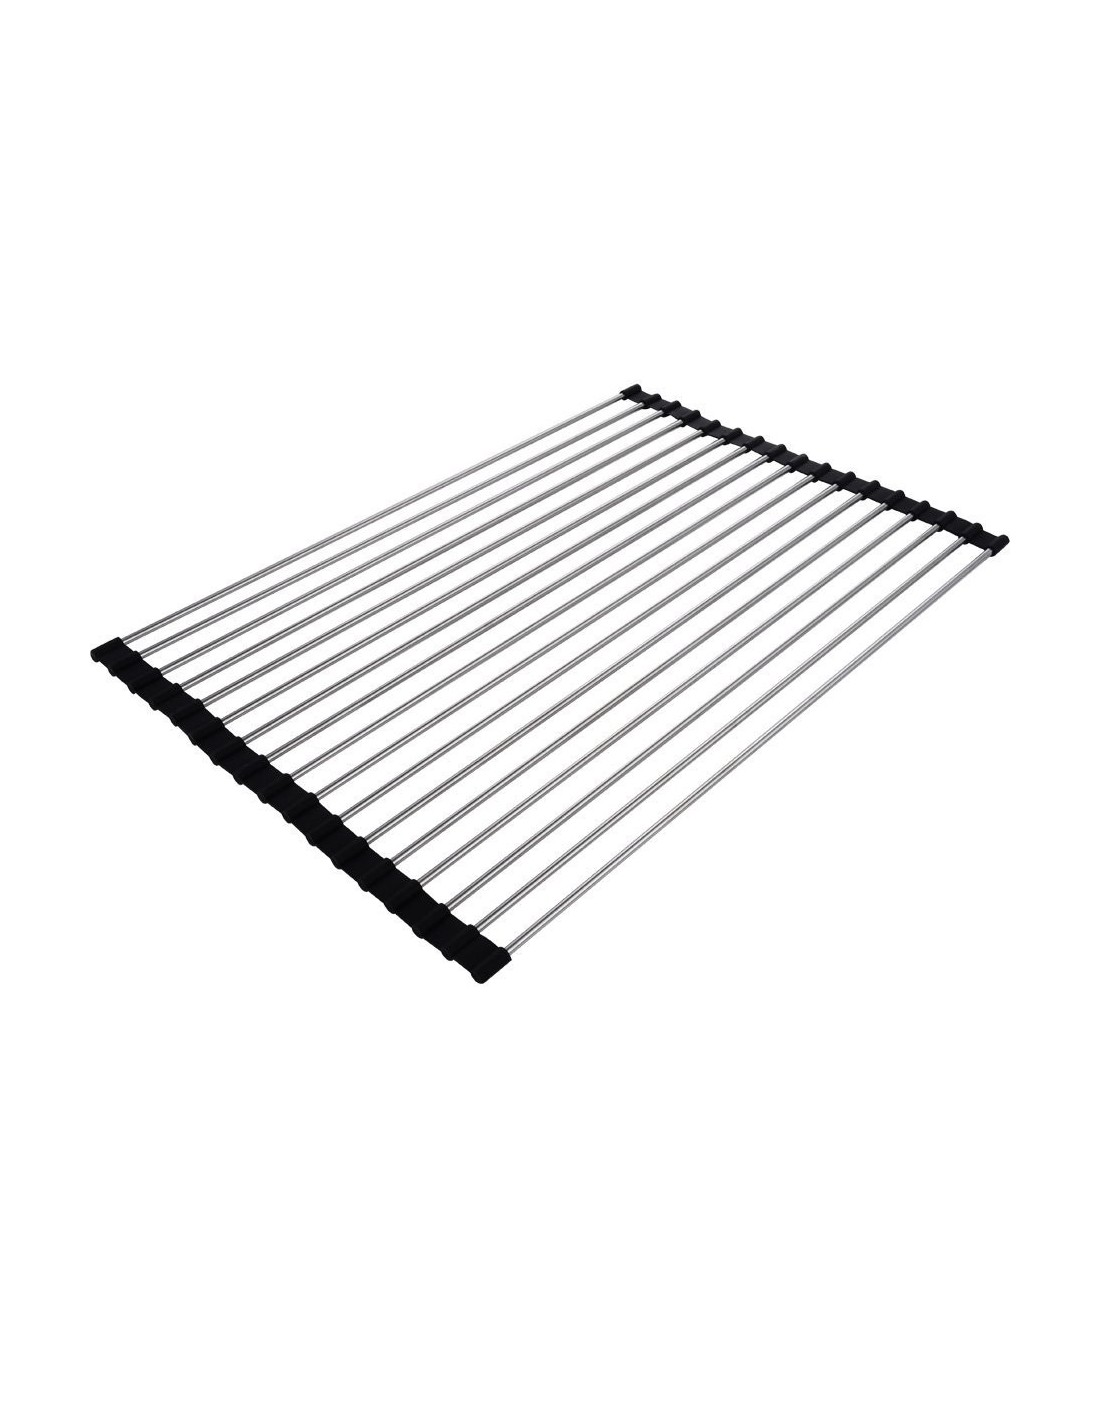 Stainless Steel Roll Mat Sink Drainer Accessory Suits